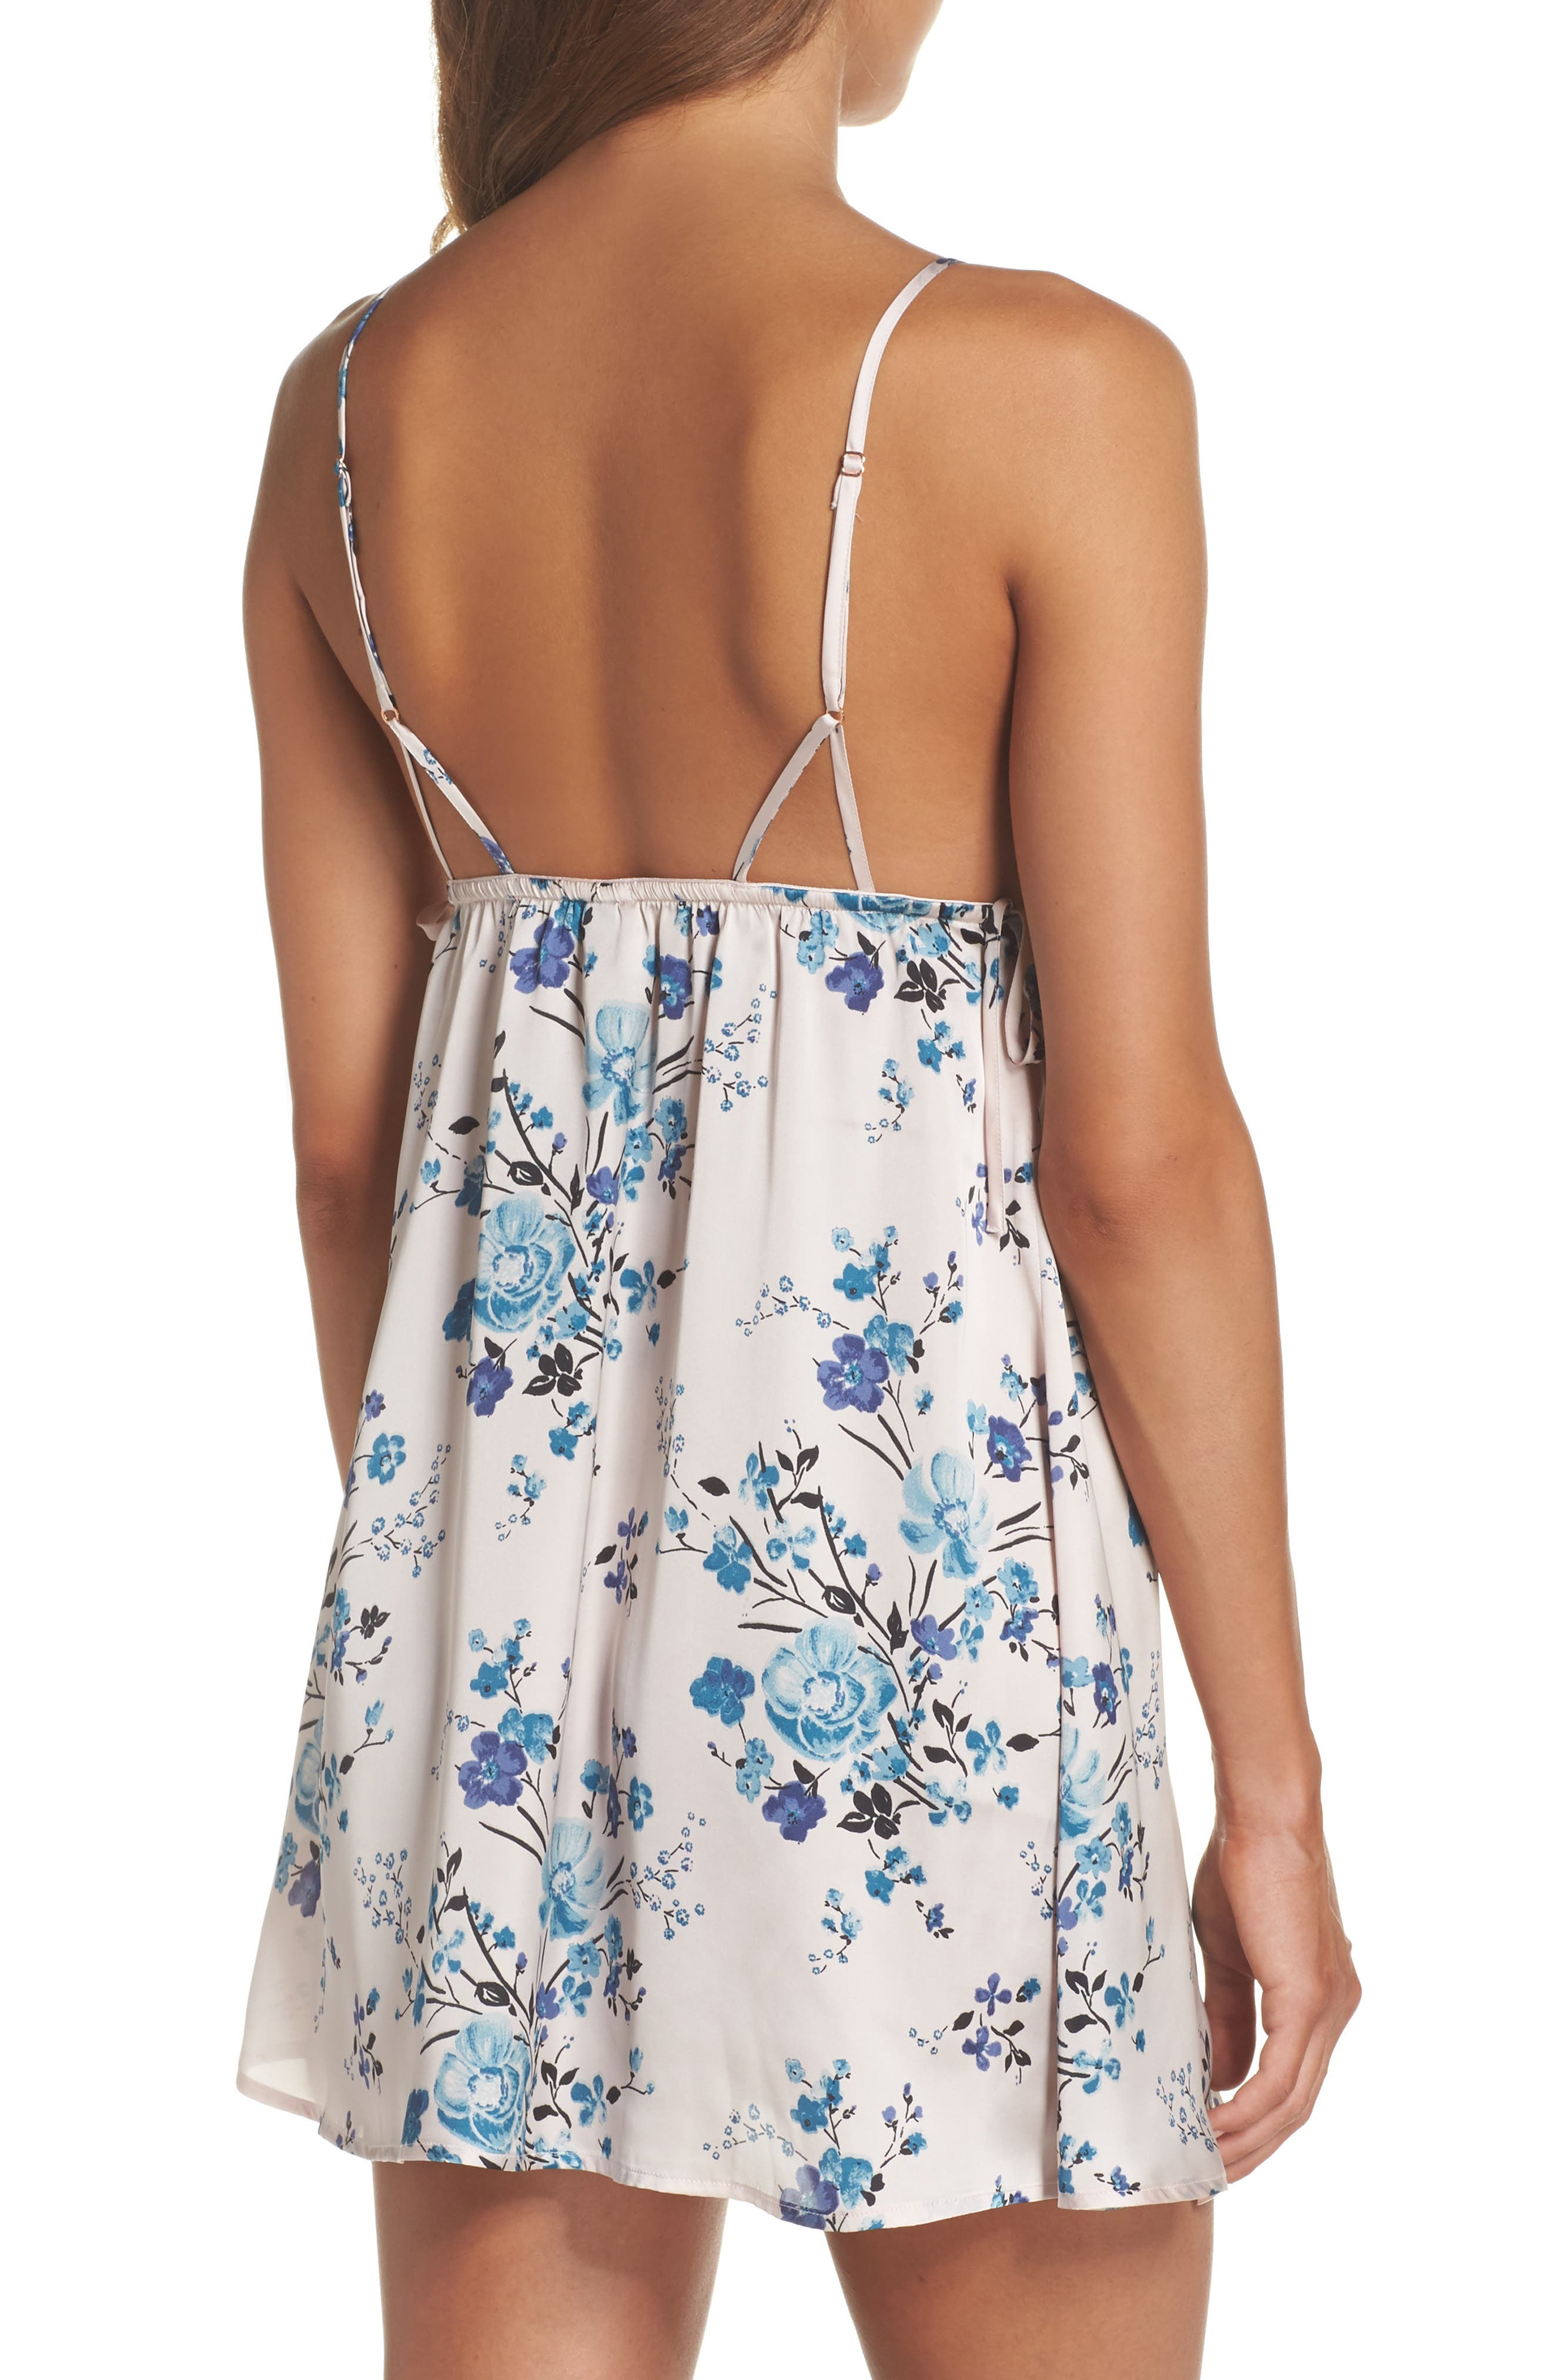 In My Dreams Chemise,                             Alternate thumbnail 2, color,                             Pink Morn Pretty Floral